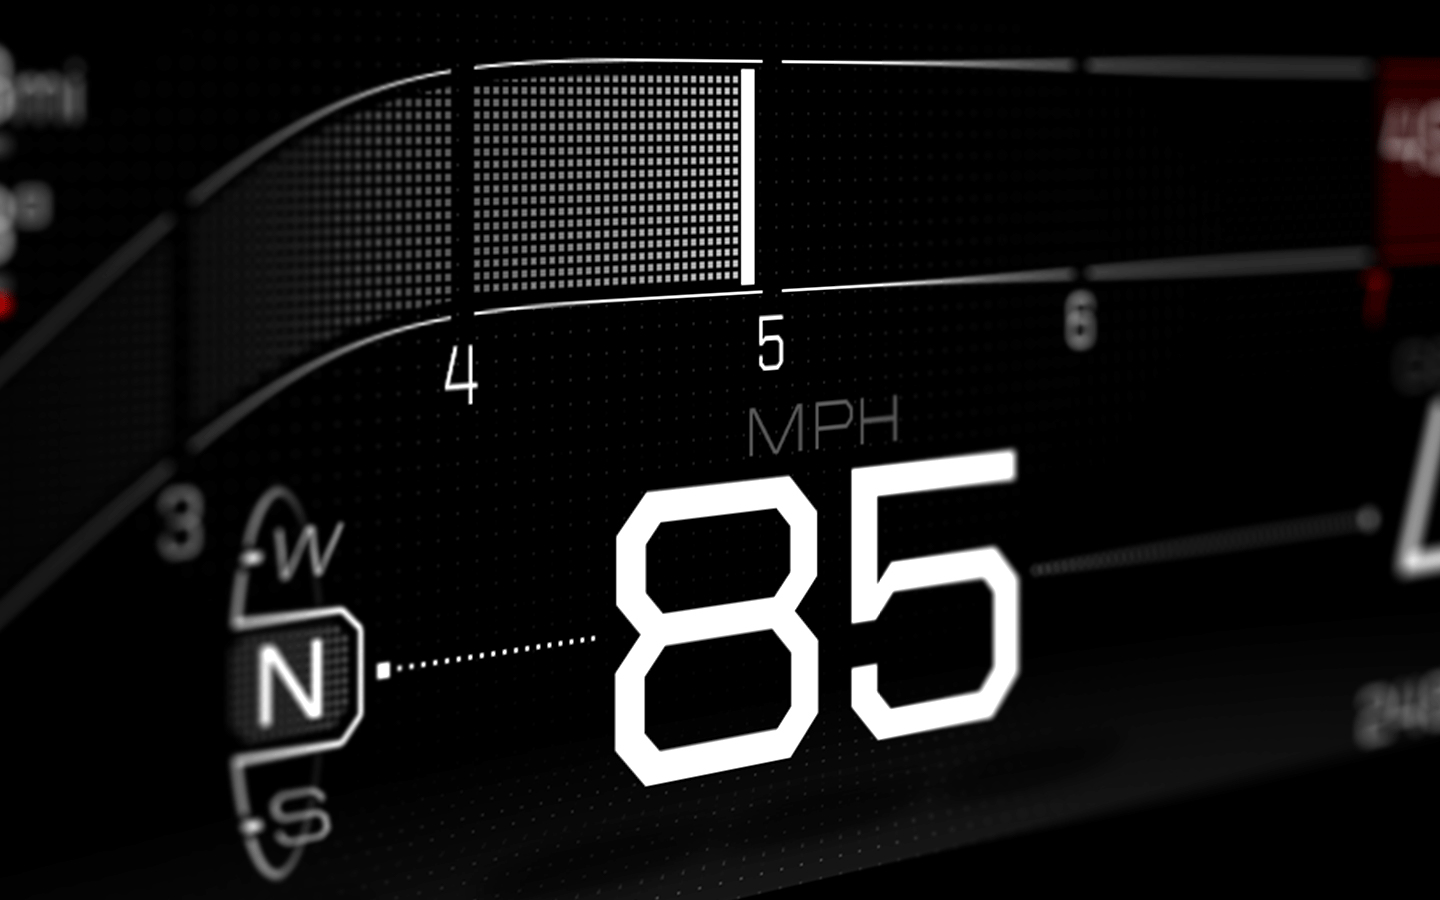 Ford Gt Gauge Cluster Changes To Fit The Driving Mode